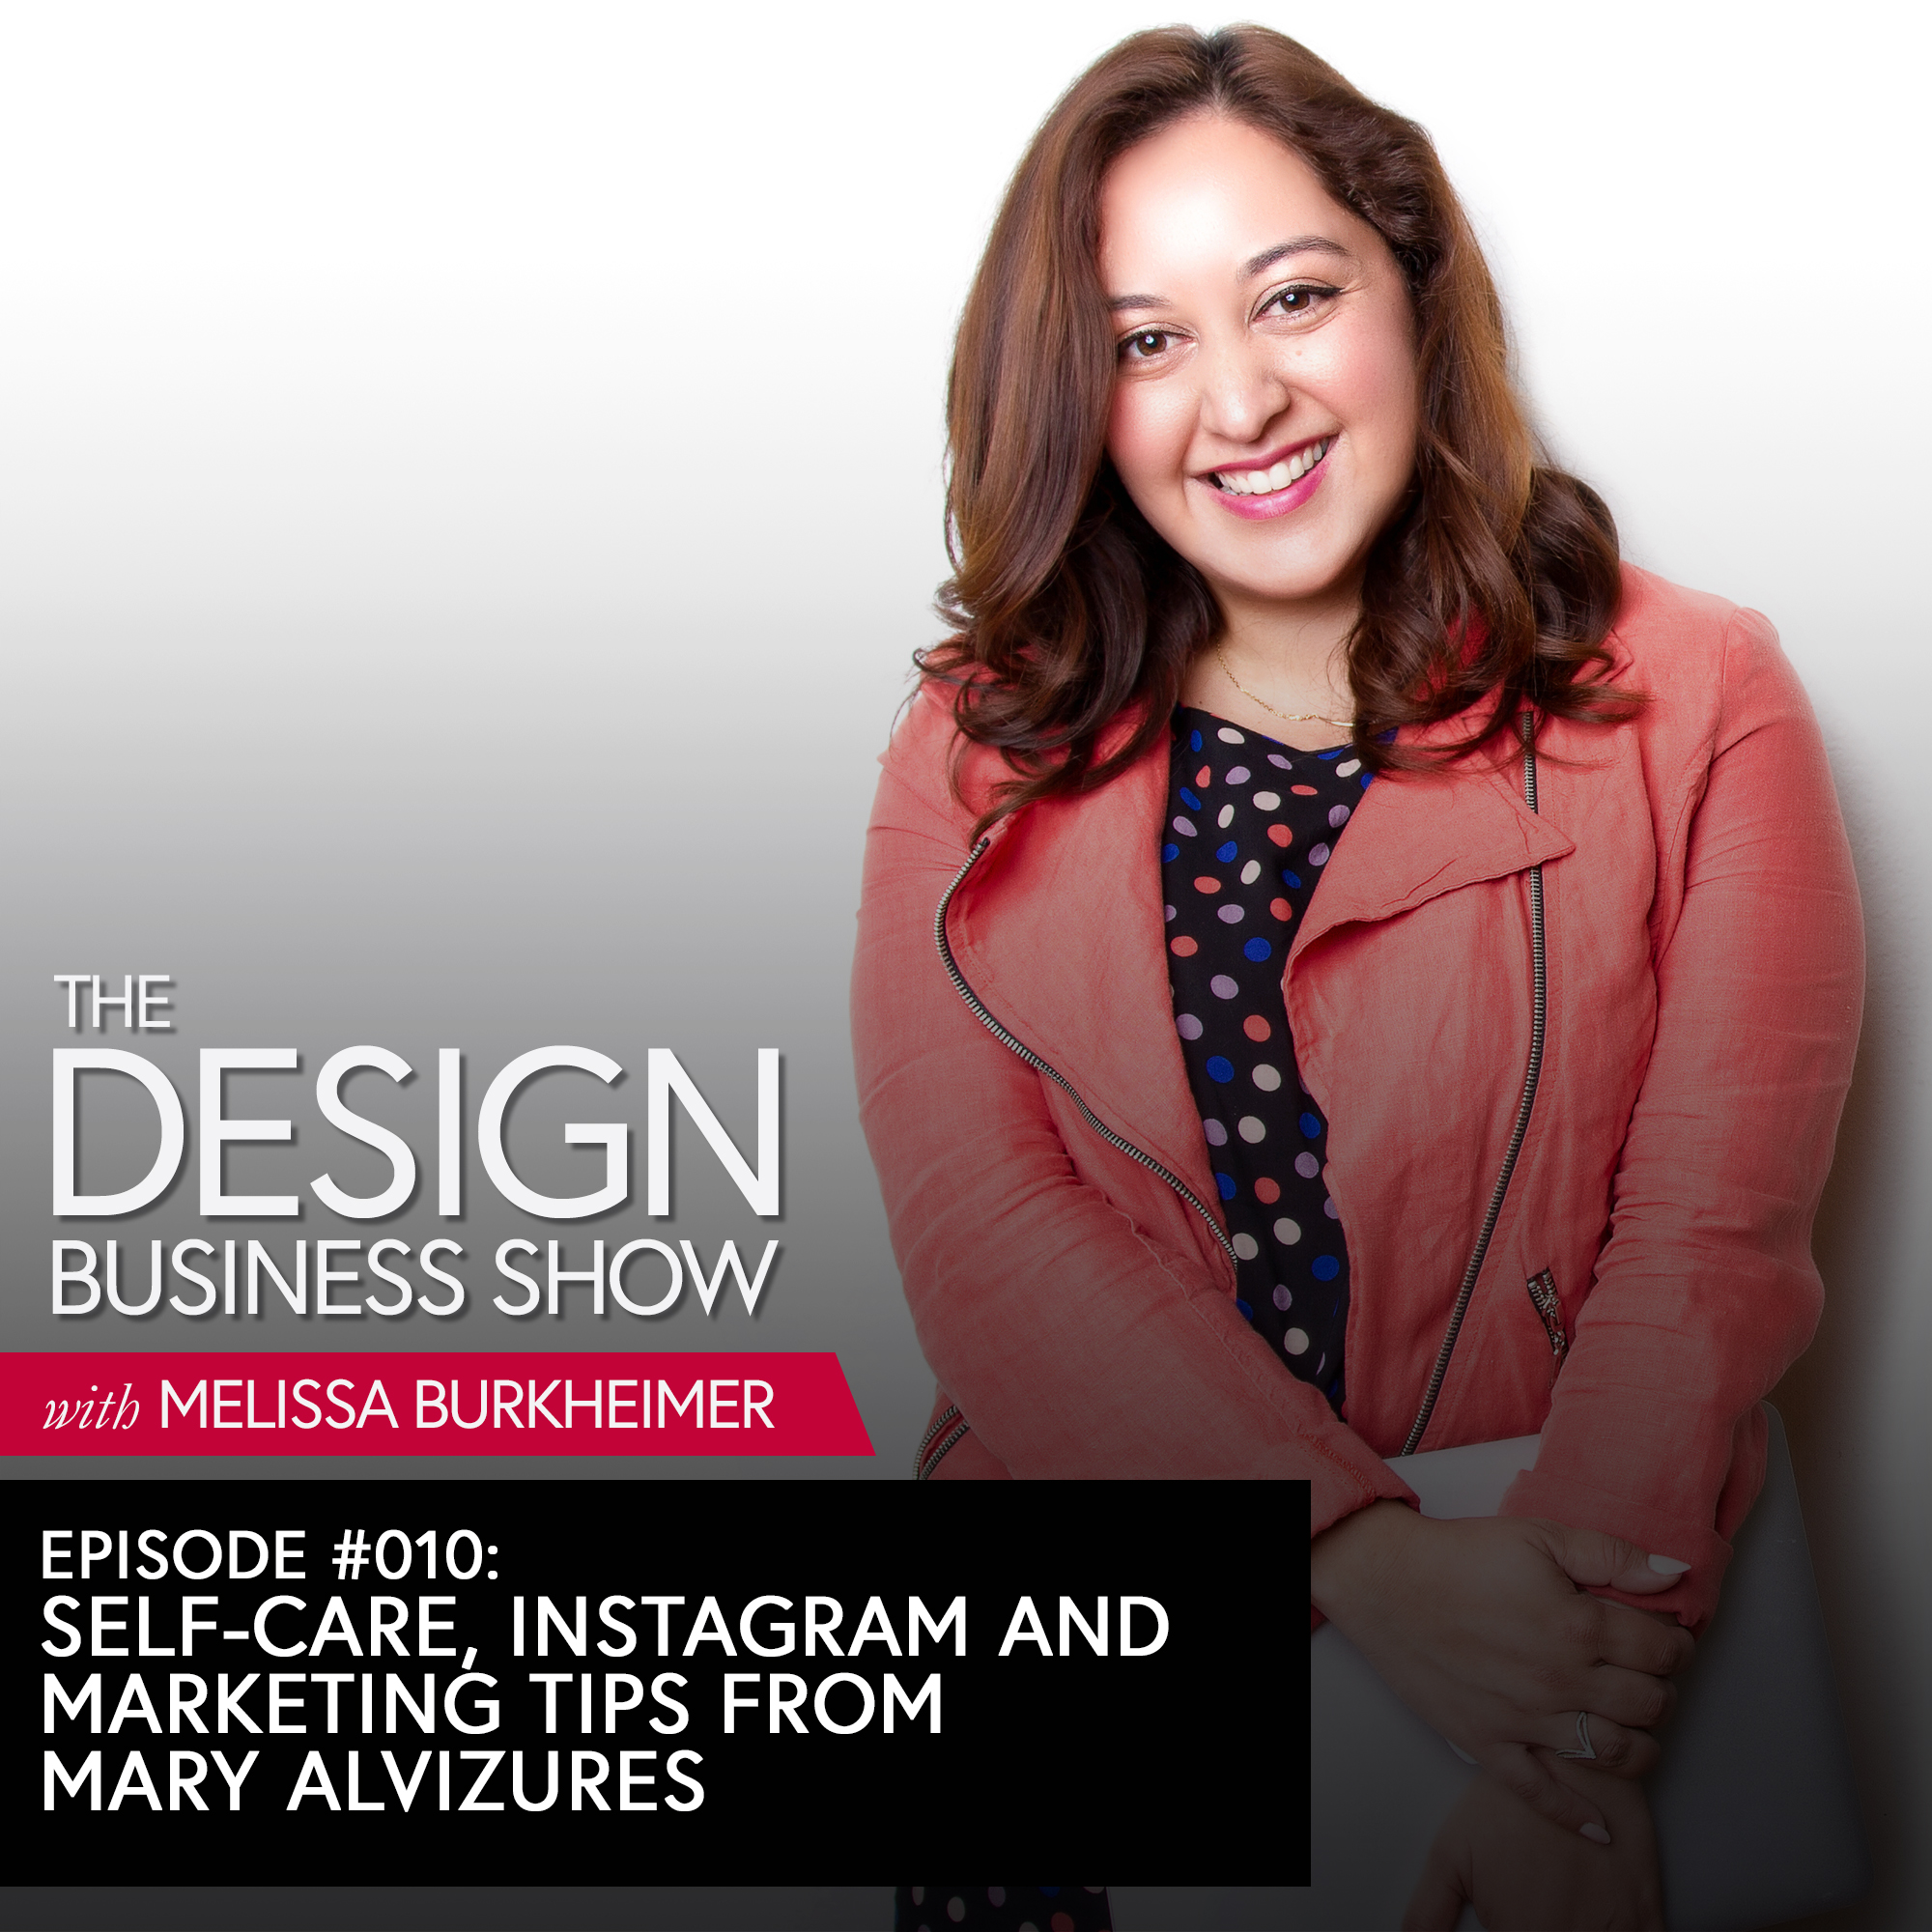 Avoid burnout and learn Instagram marketing strategies for designers with Mary Alvizures